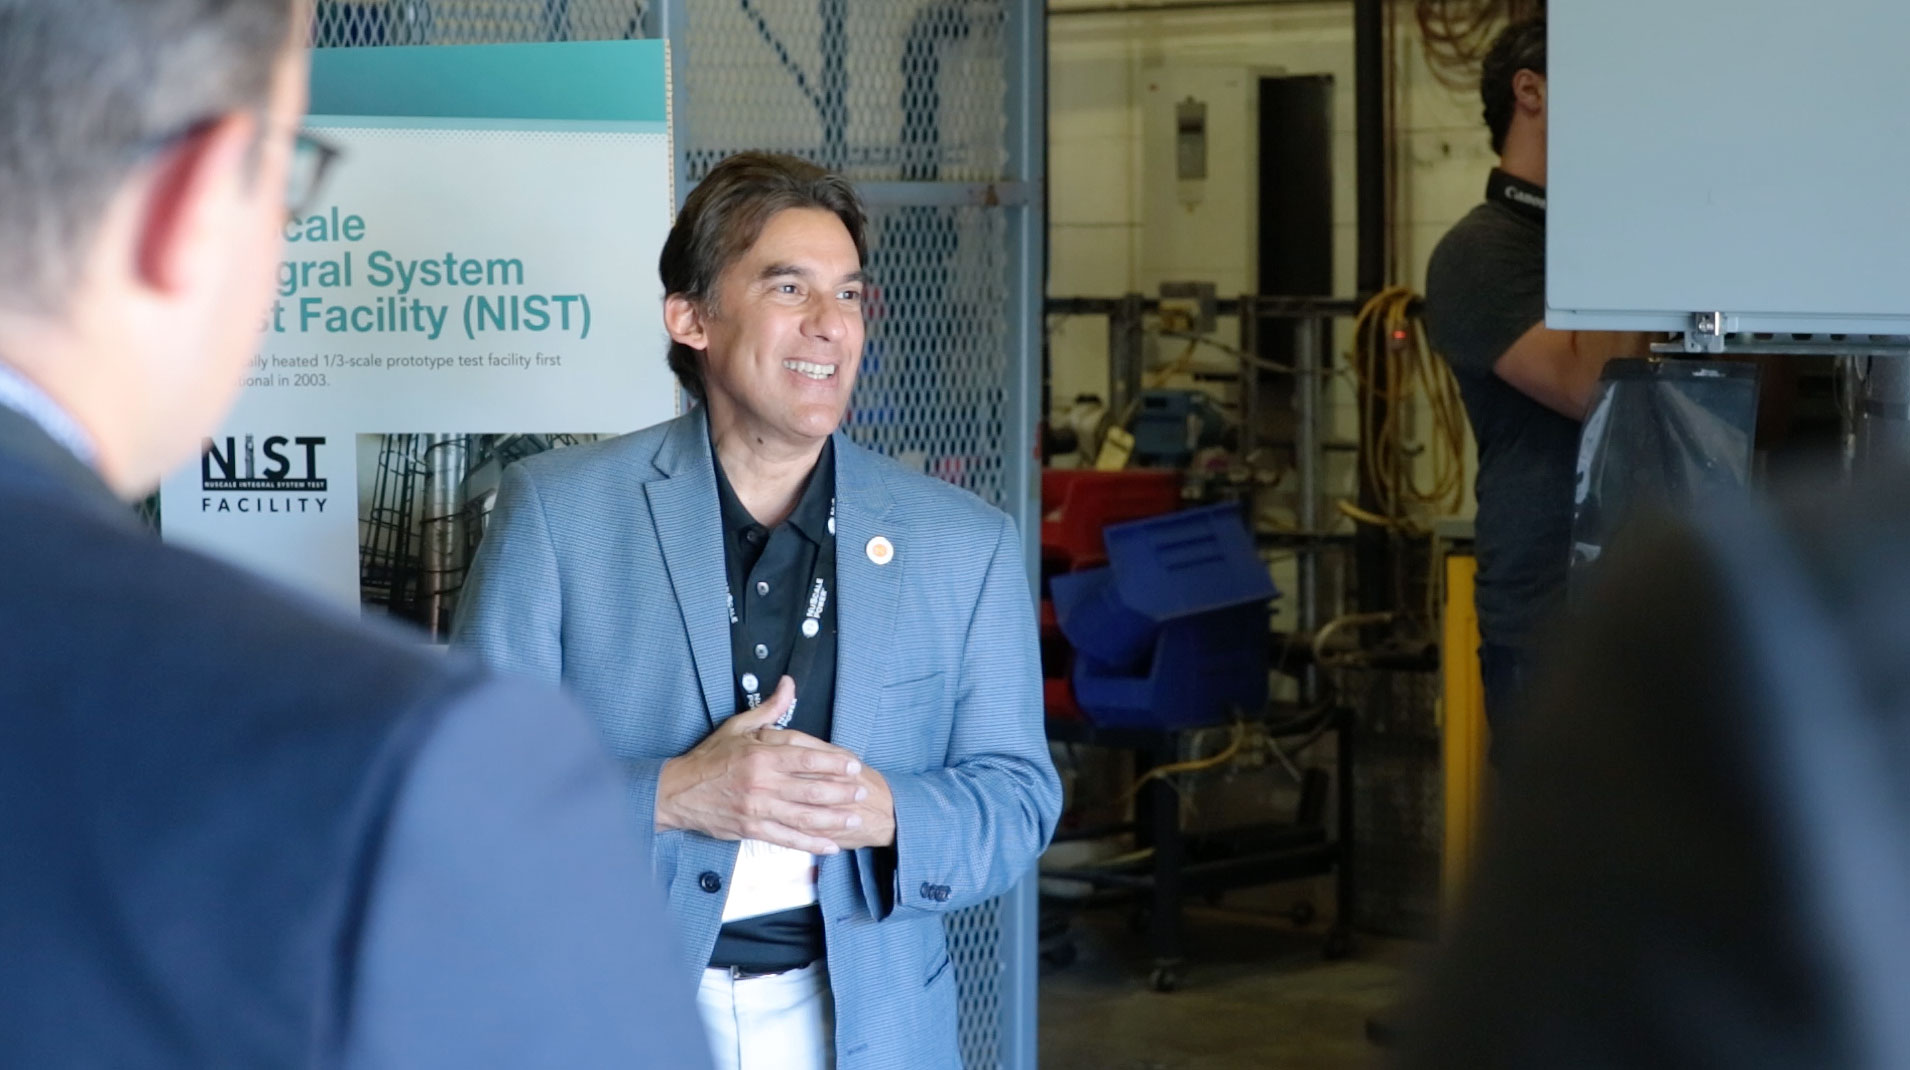 Professor Jose Reyes leads a tour of the NIST-1 facility.